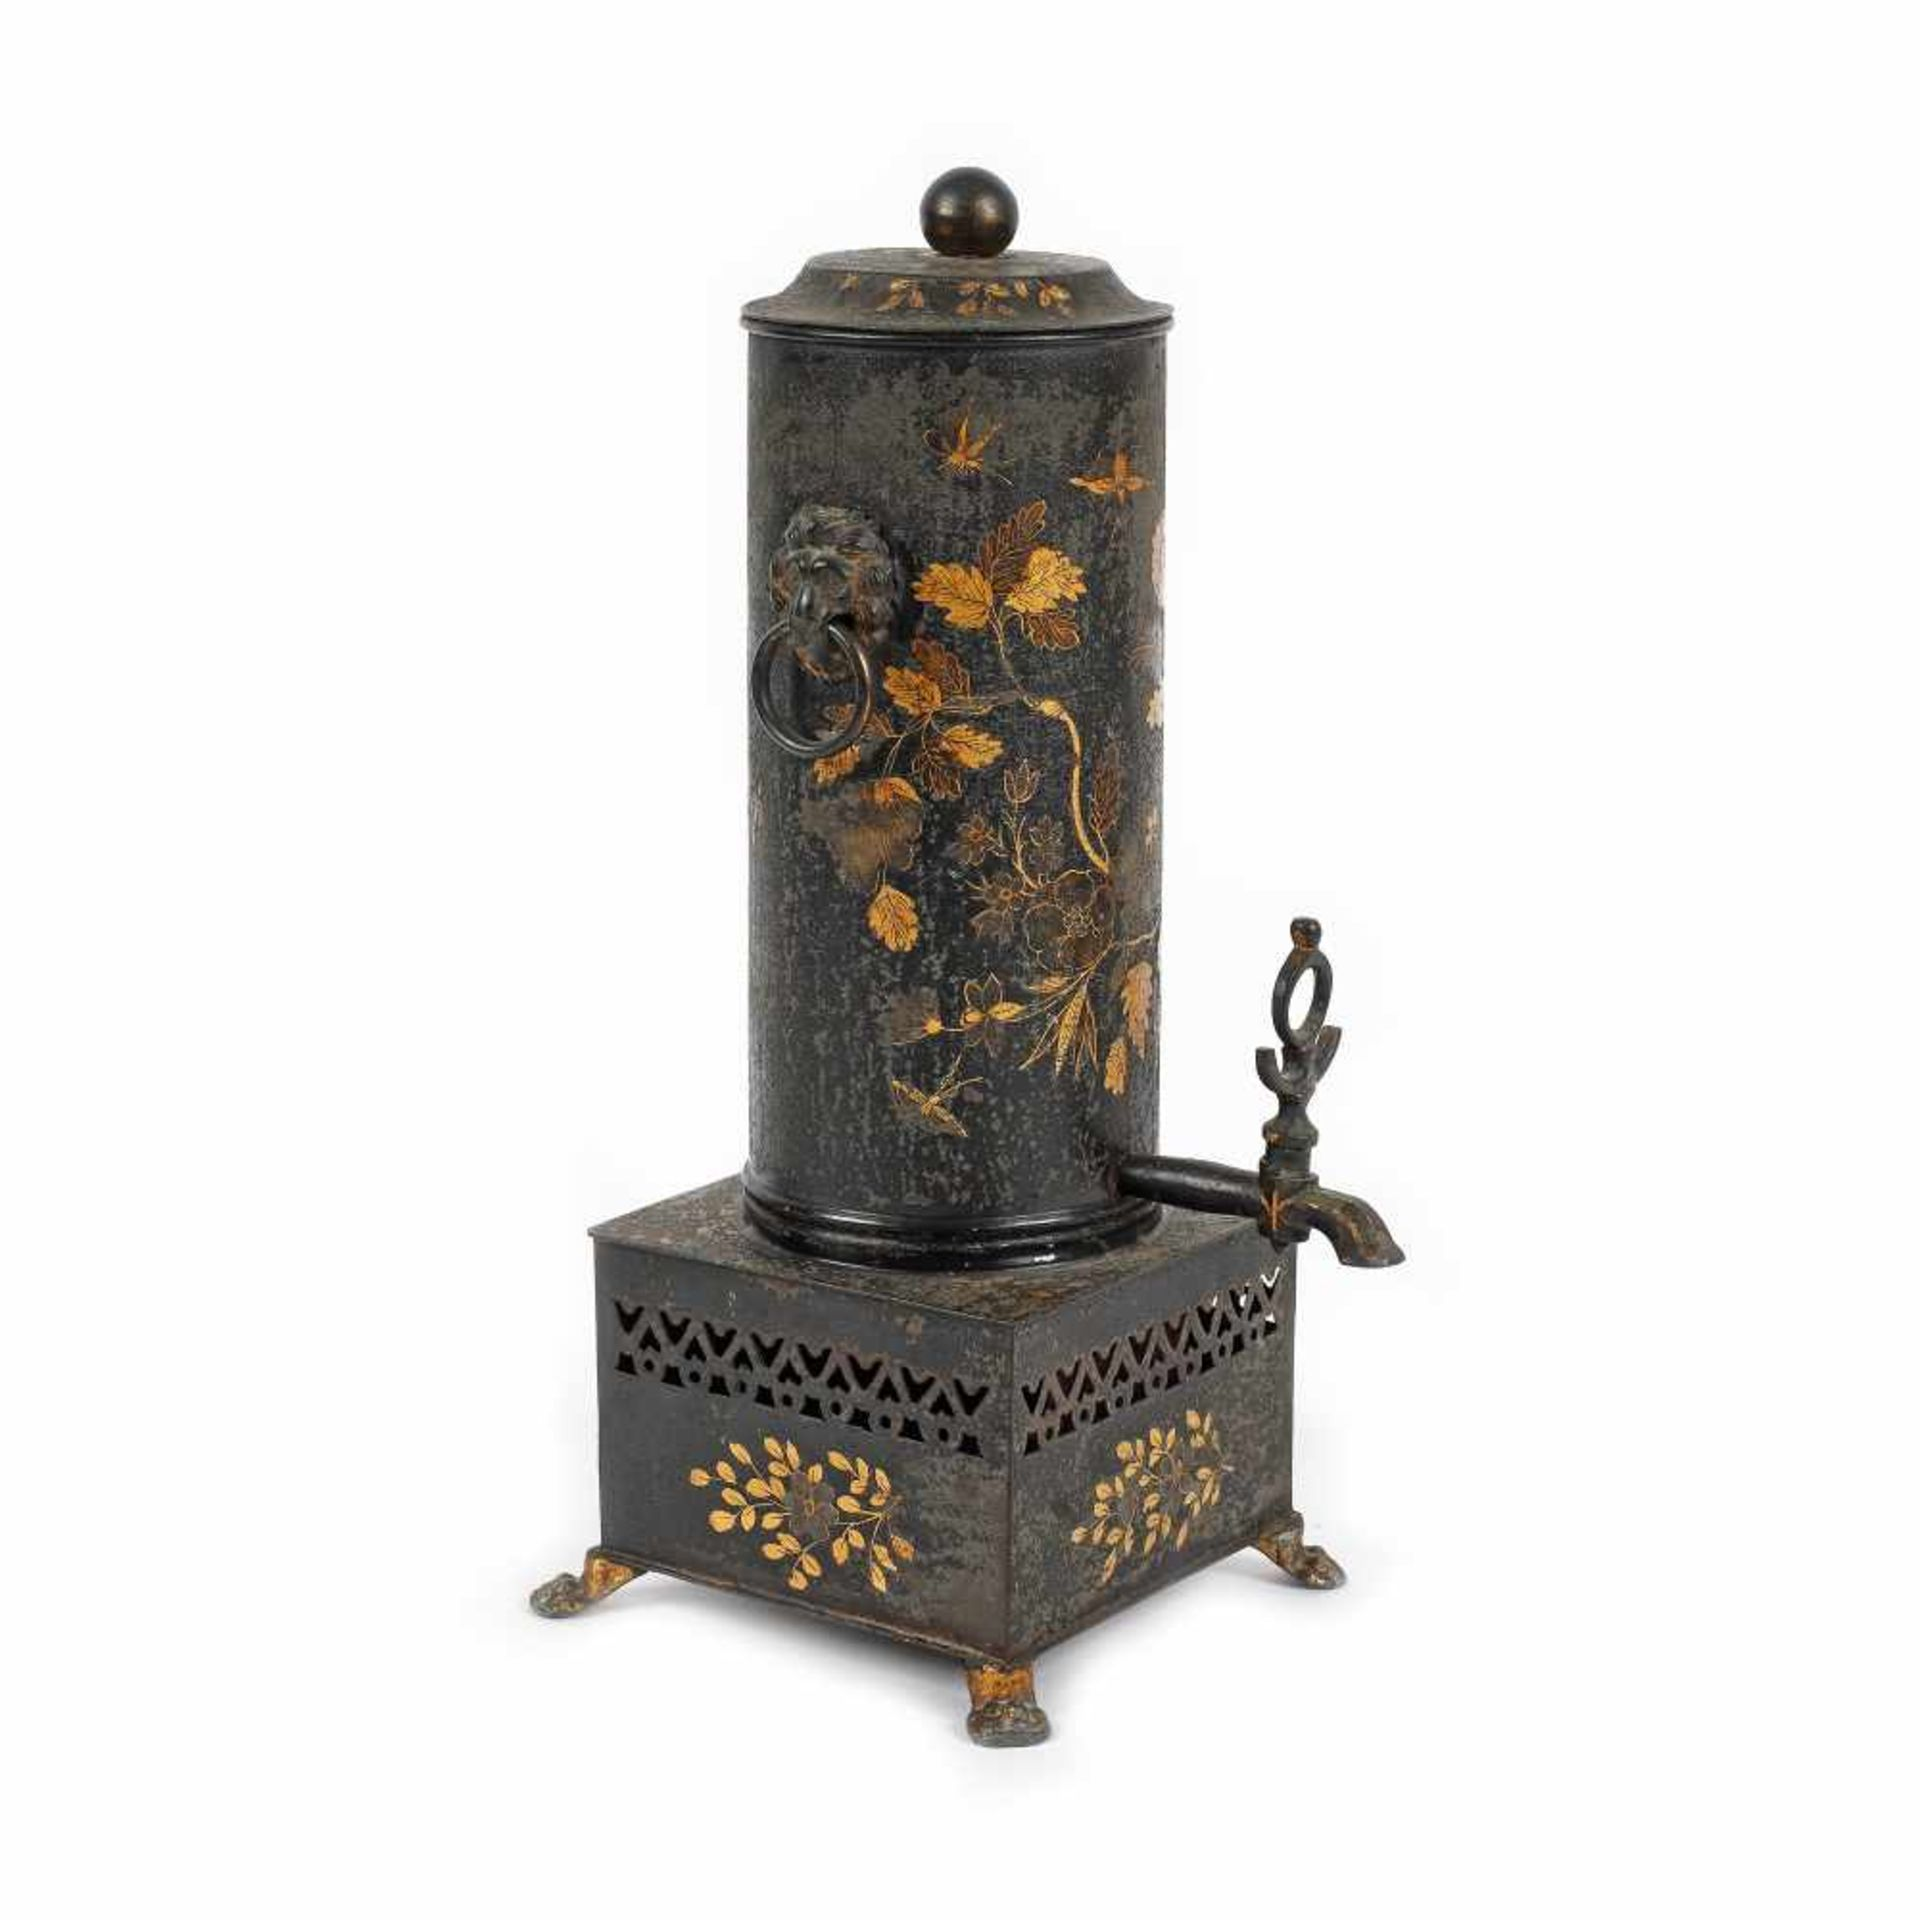 Coffee maker decorated with floral motifs, possibly France, early 20th century - Bild 2 aus 3